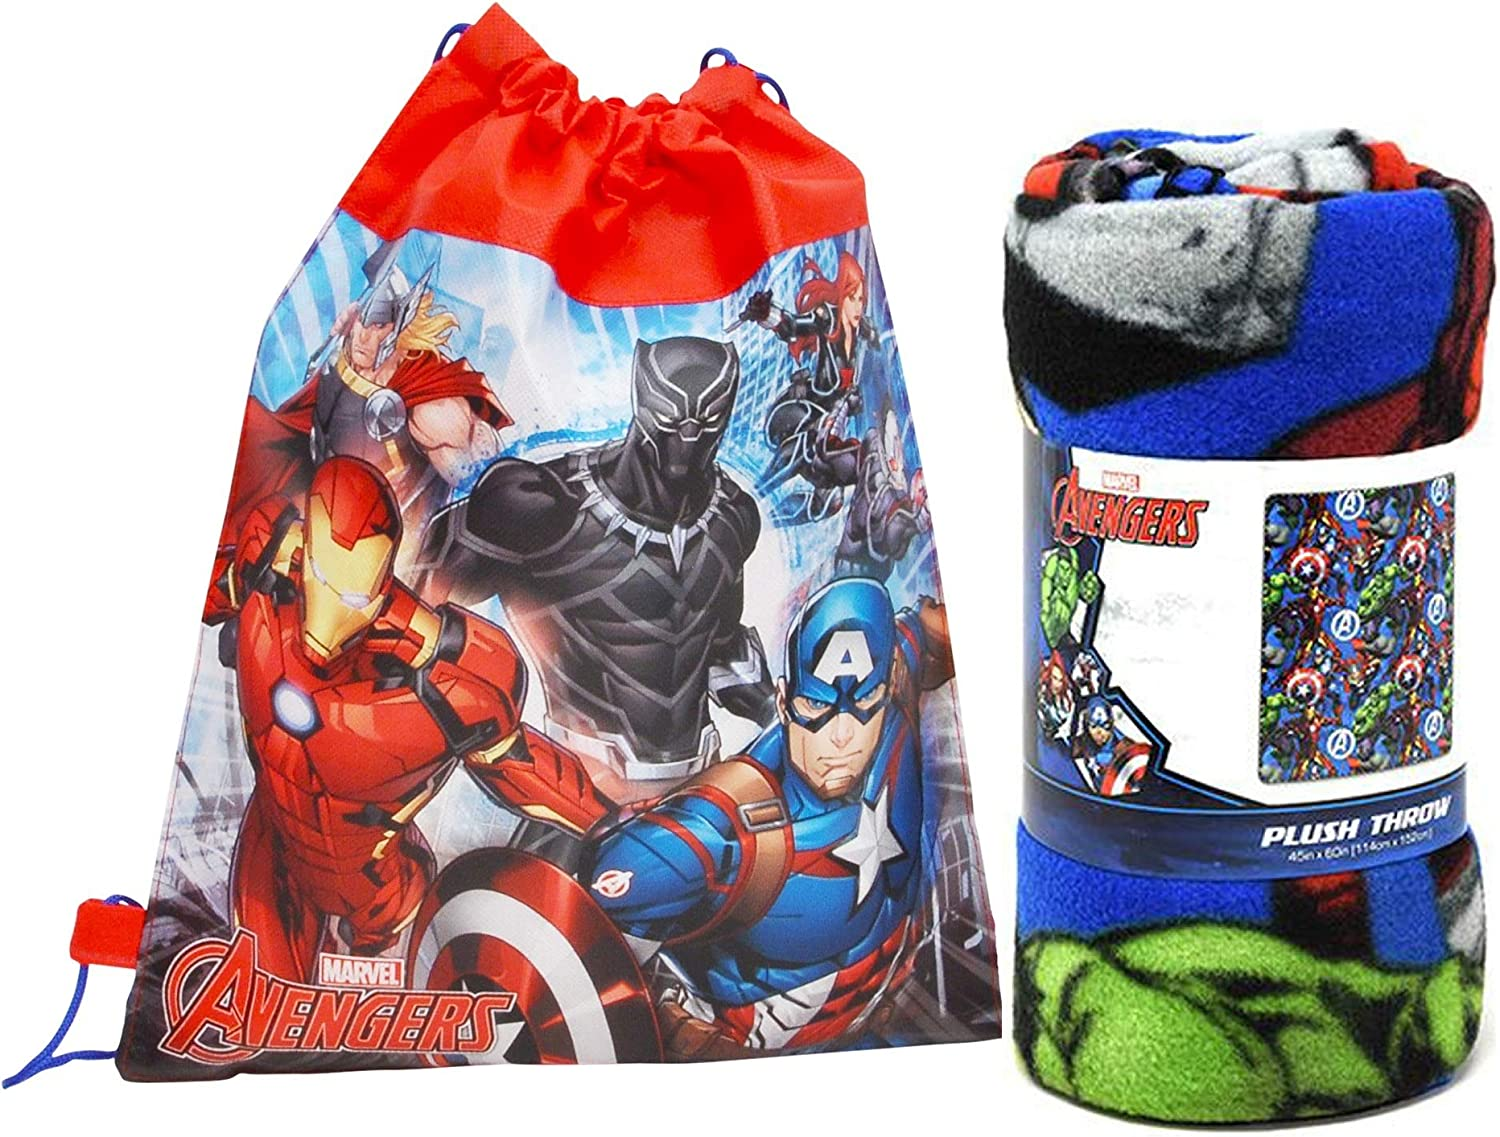 Marvel Northwest Courier shipping free Fleece Throw Blanket and pc 2 Superior Bag Sling - Tote